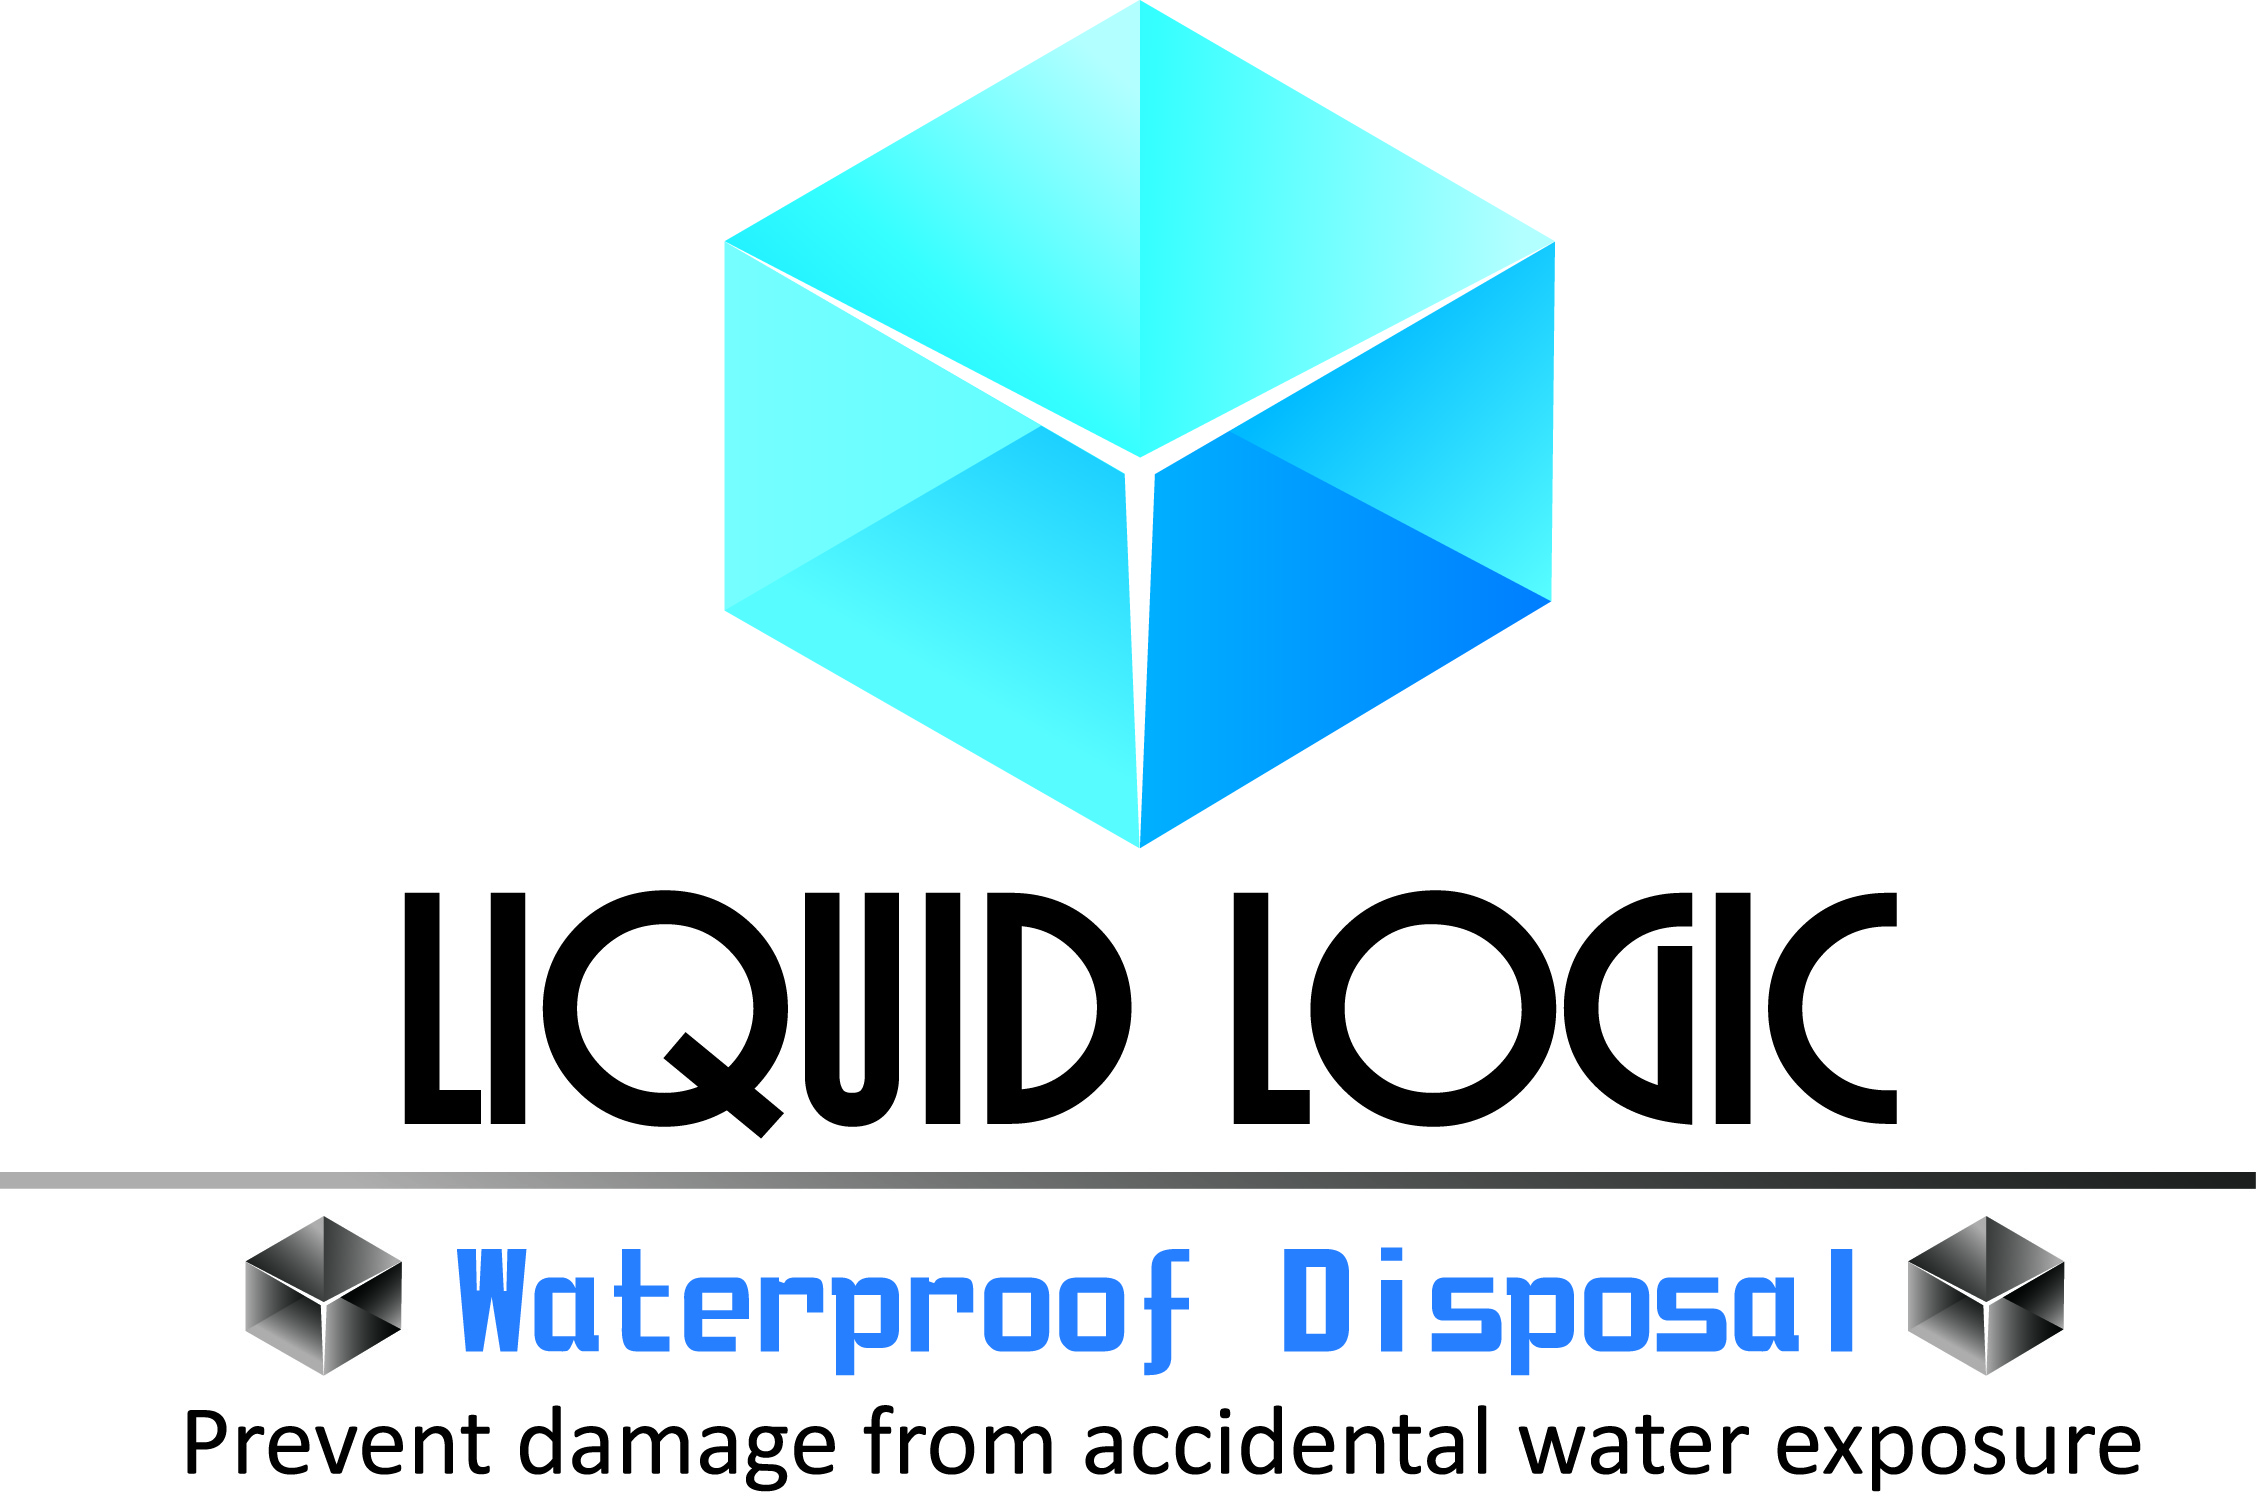 liquid-logic-pop.jpg